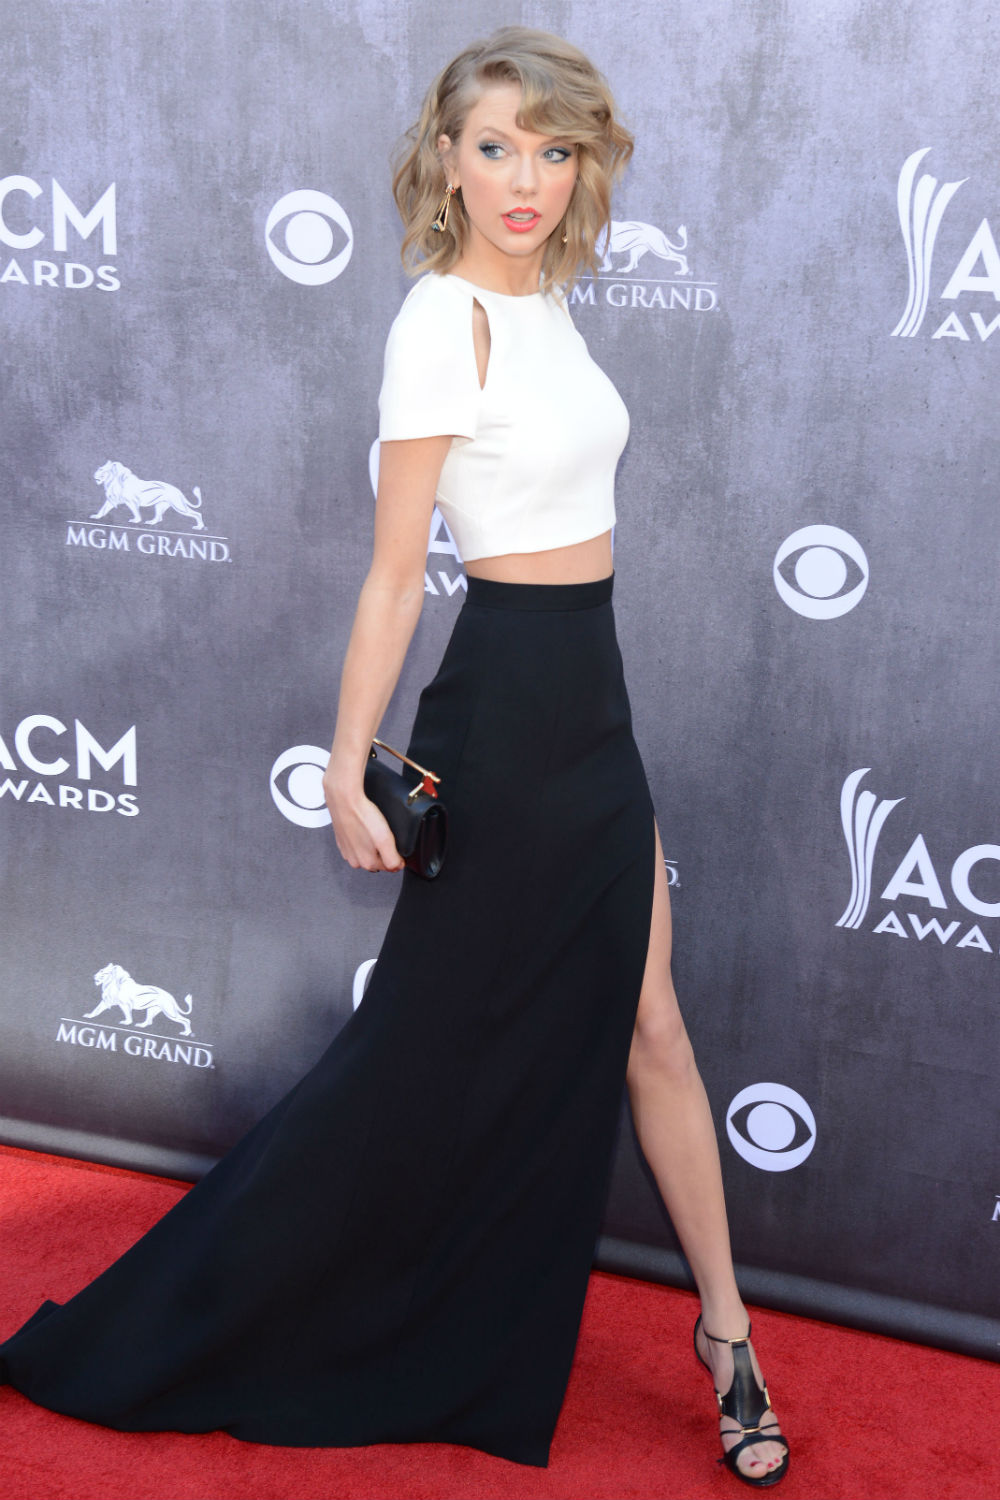 Taylor Swift Shows Some Serious Leg At The Academy Of Country Music Awards